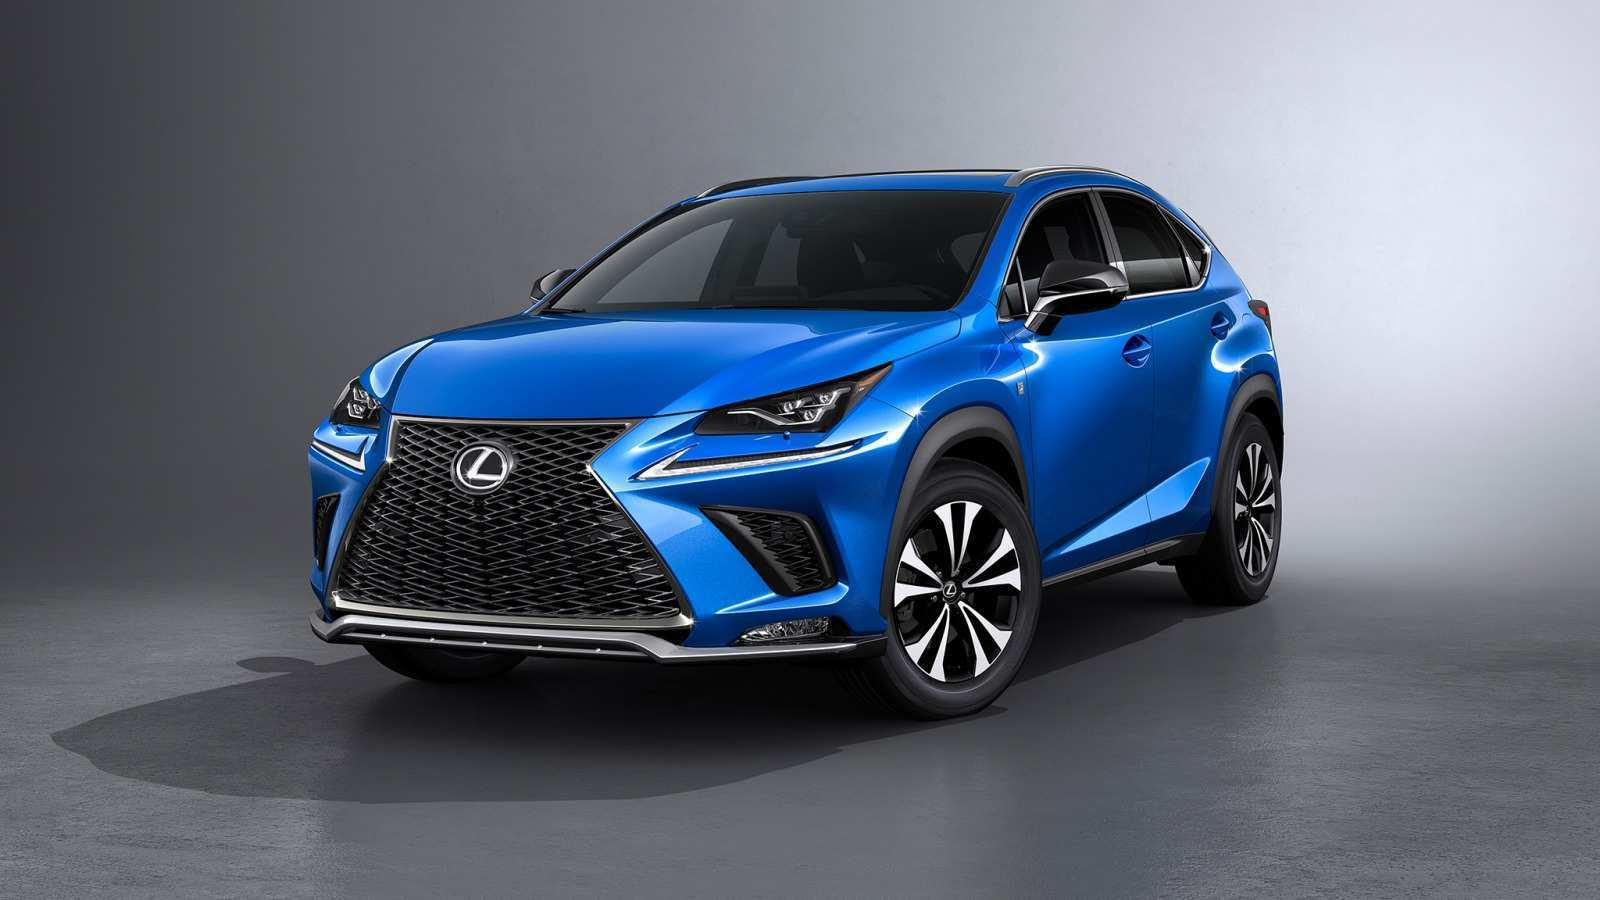 33 All New Rx300 Lexus 2019 Model